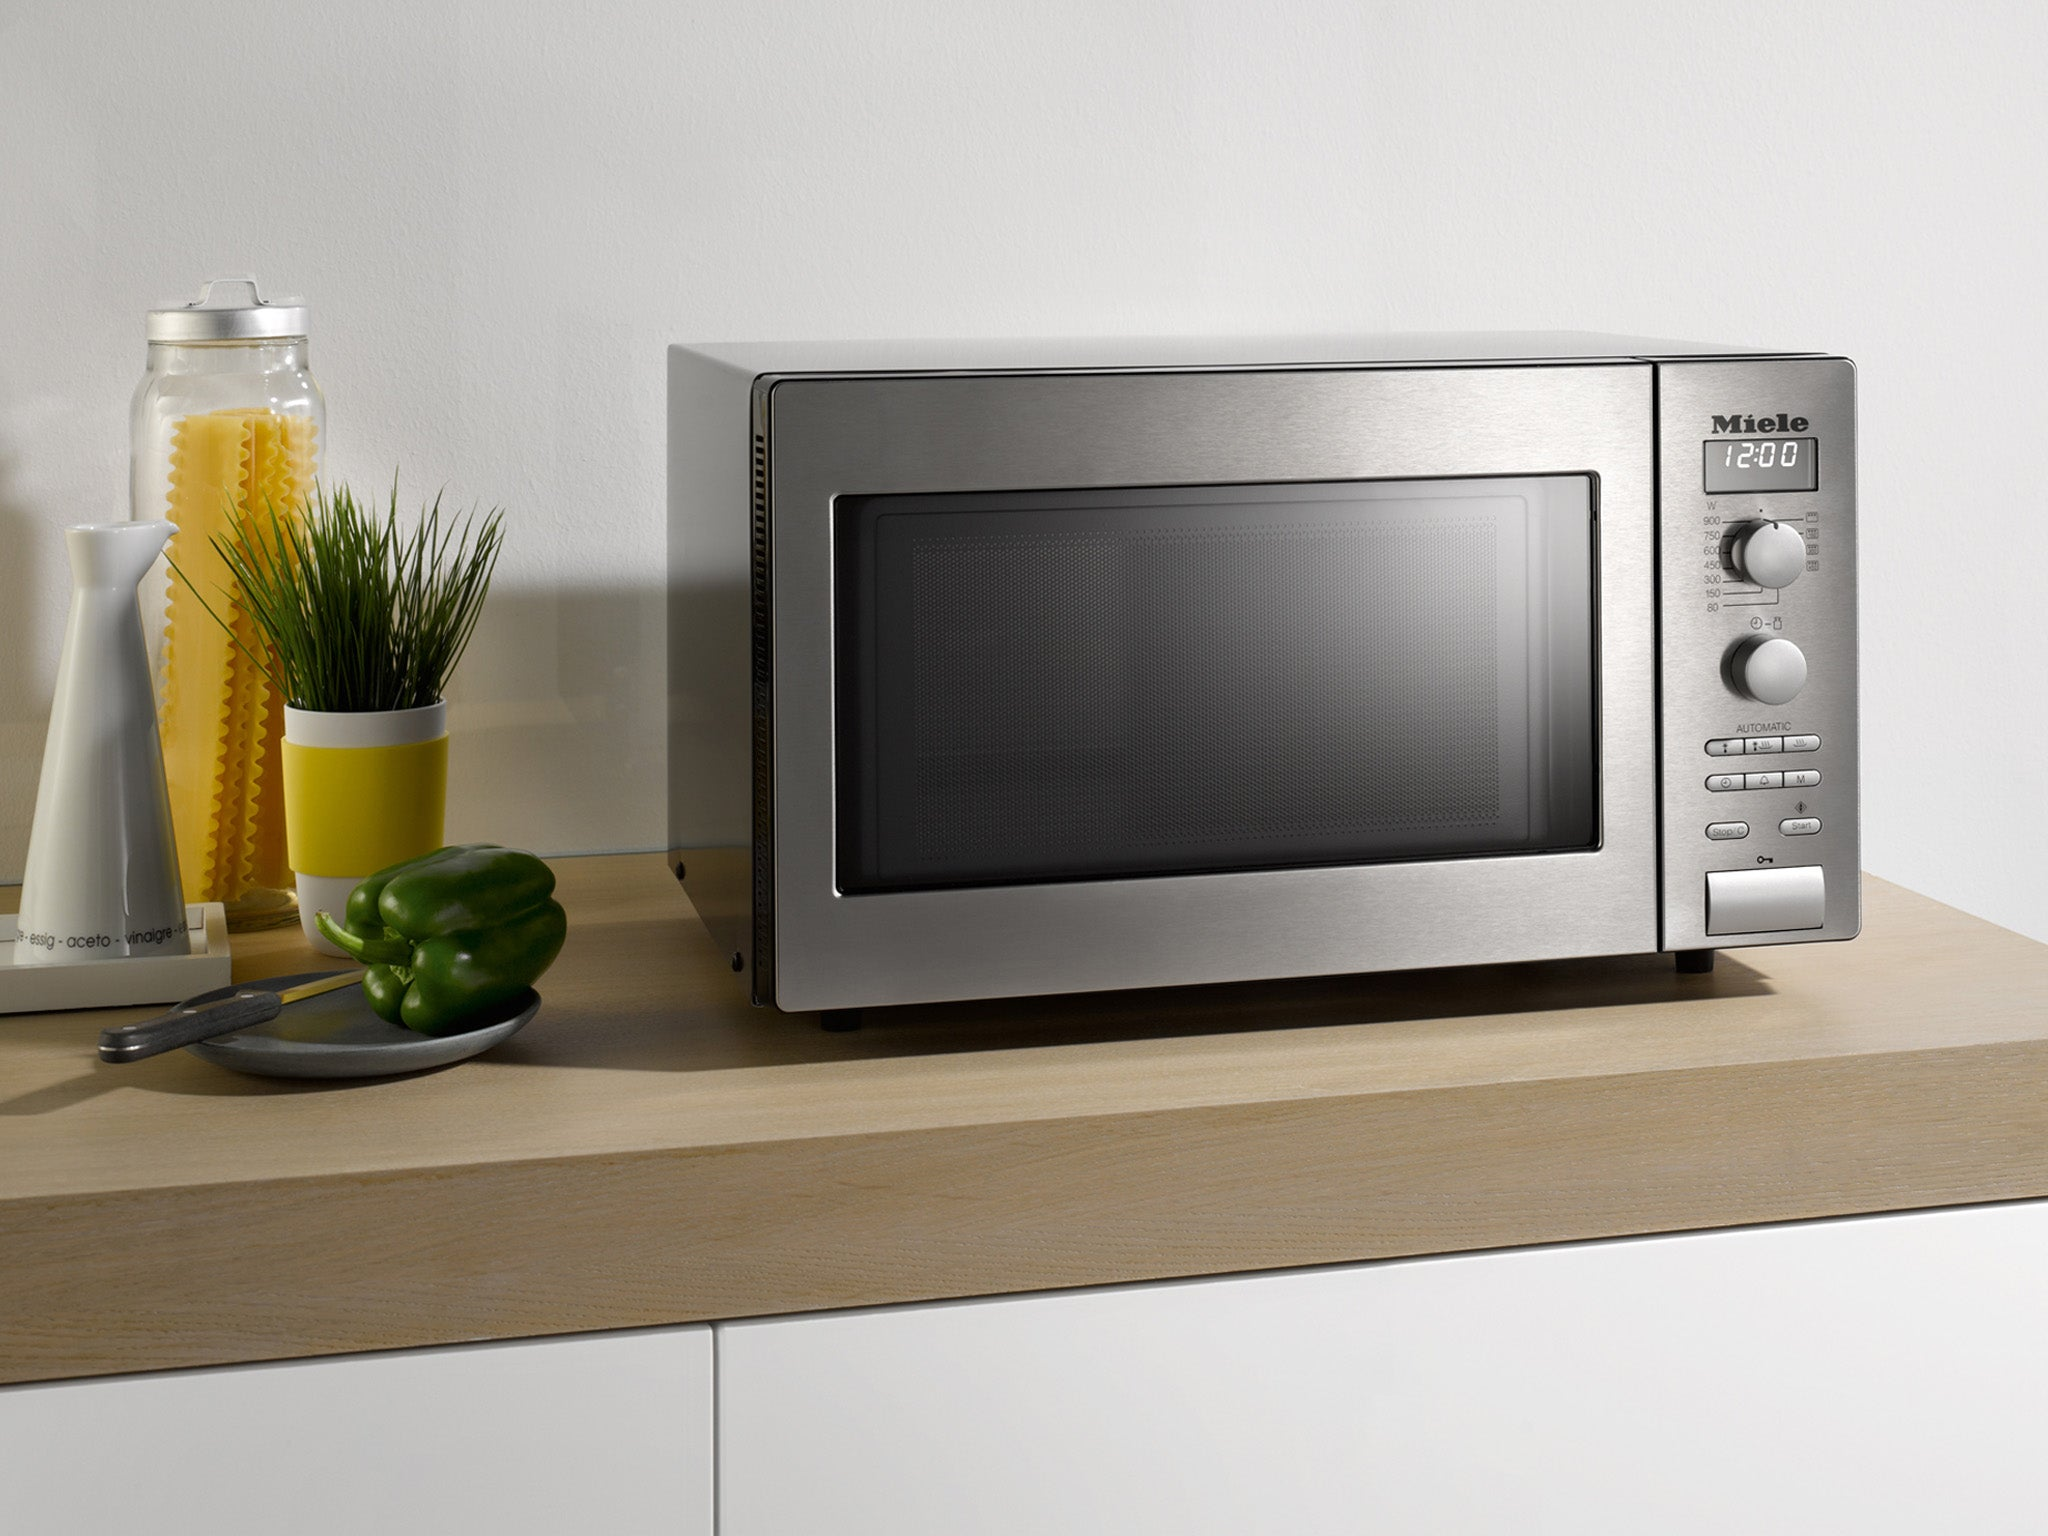 Top 5 Kitchen Appliance Brands 10 Best Microwaves The Independent